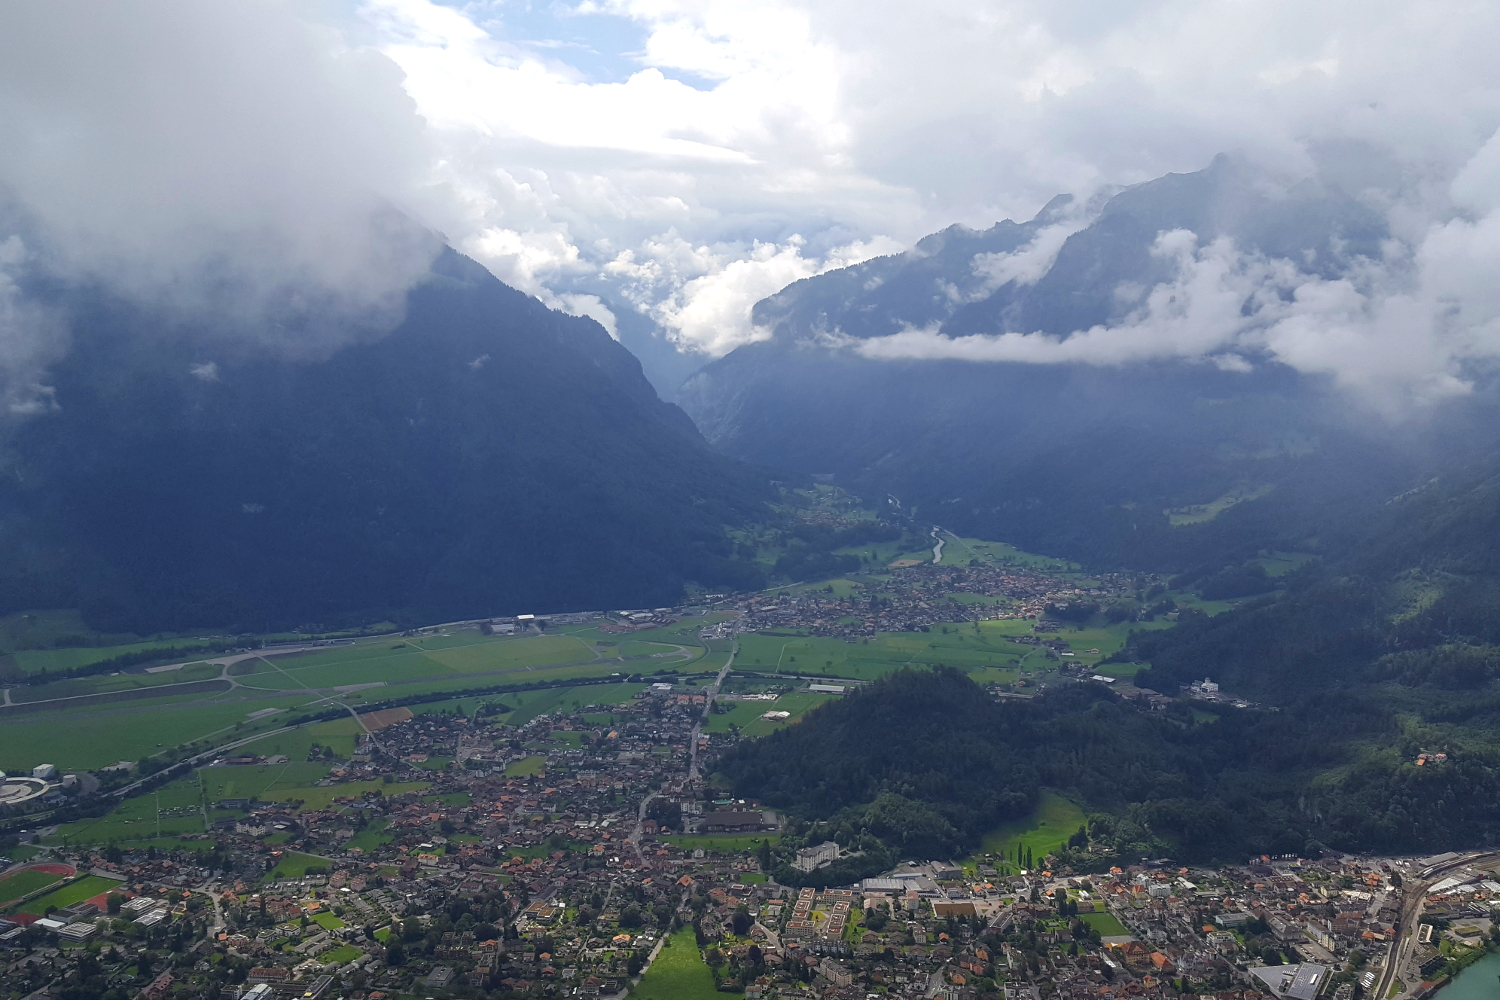 View from Harder Kulm above the Swiss town of Interlaken